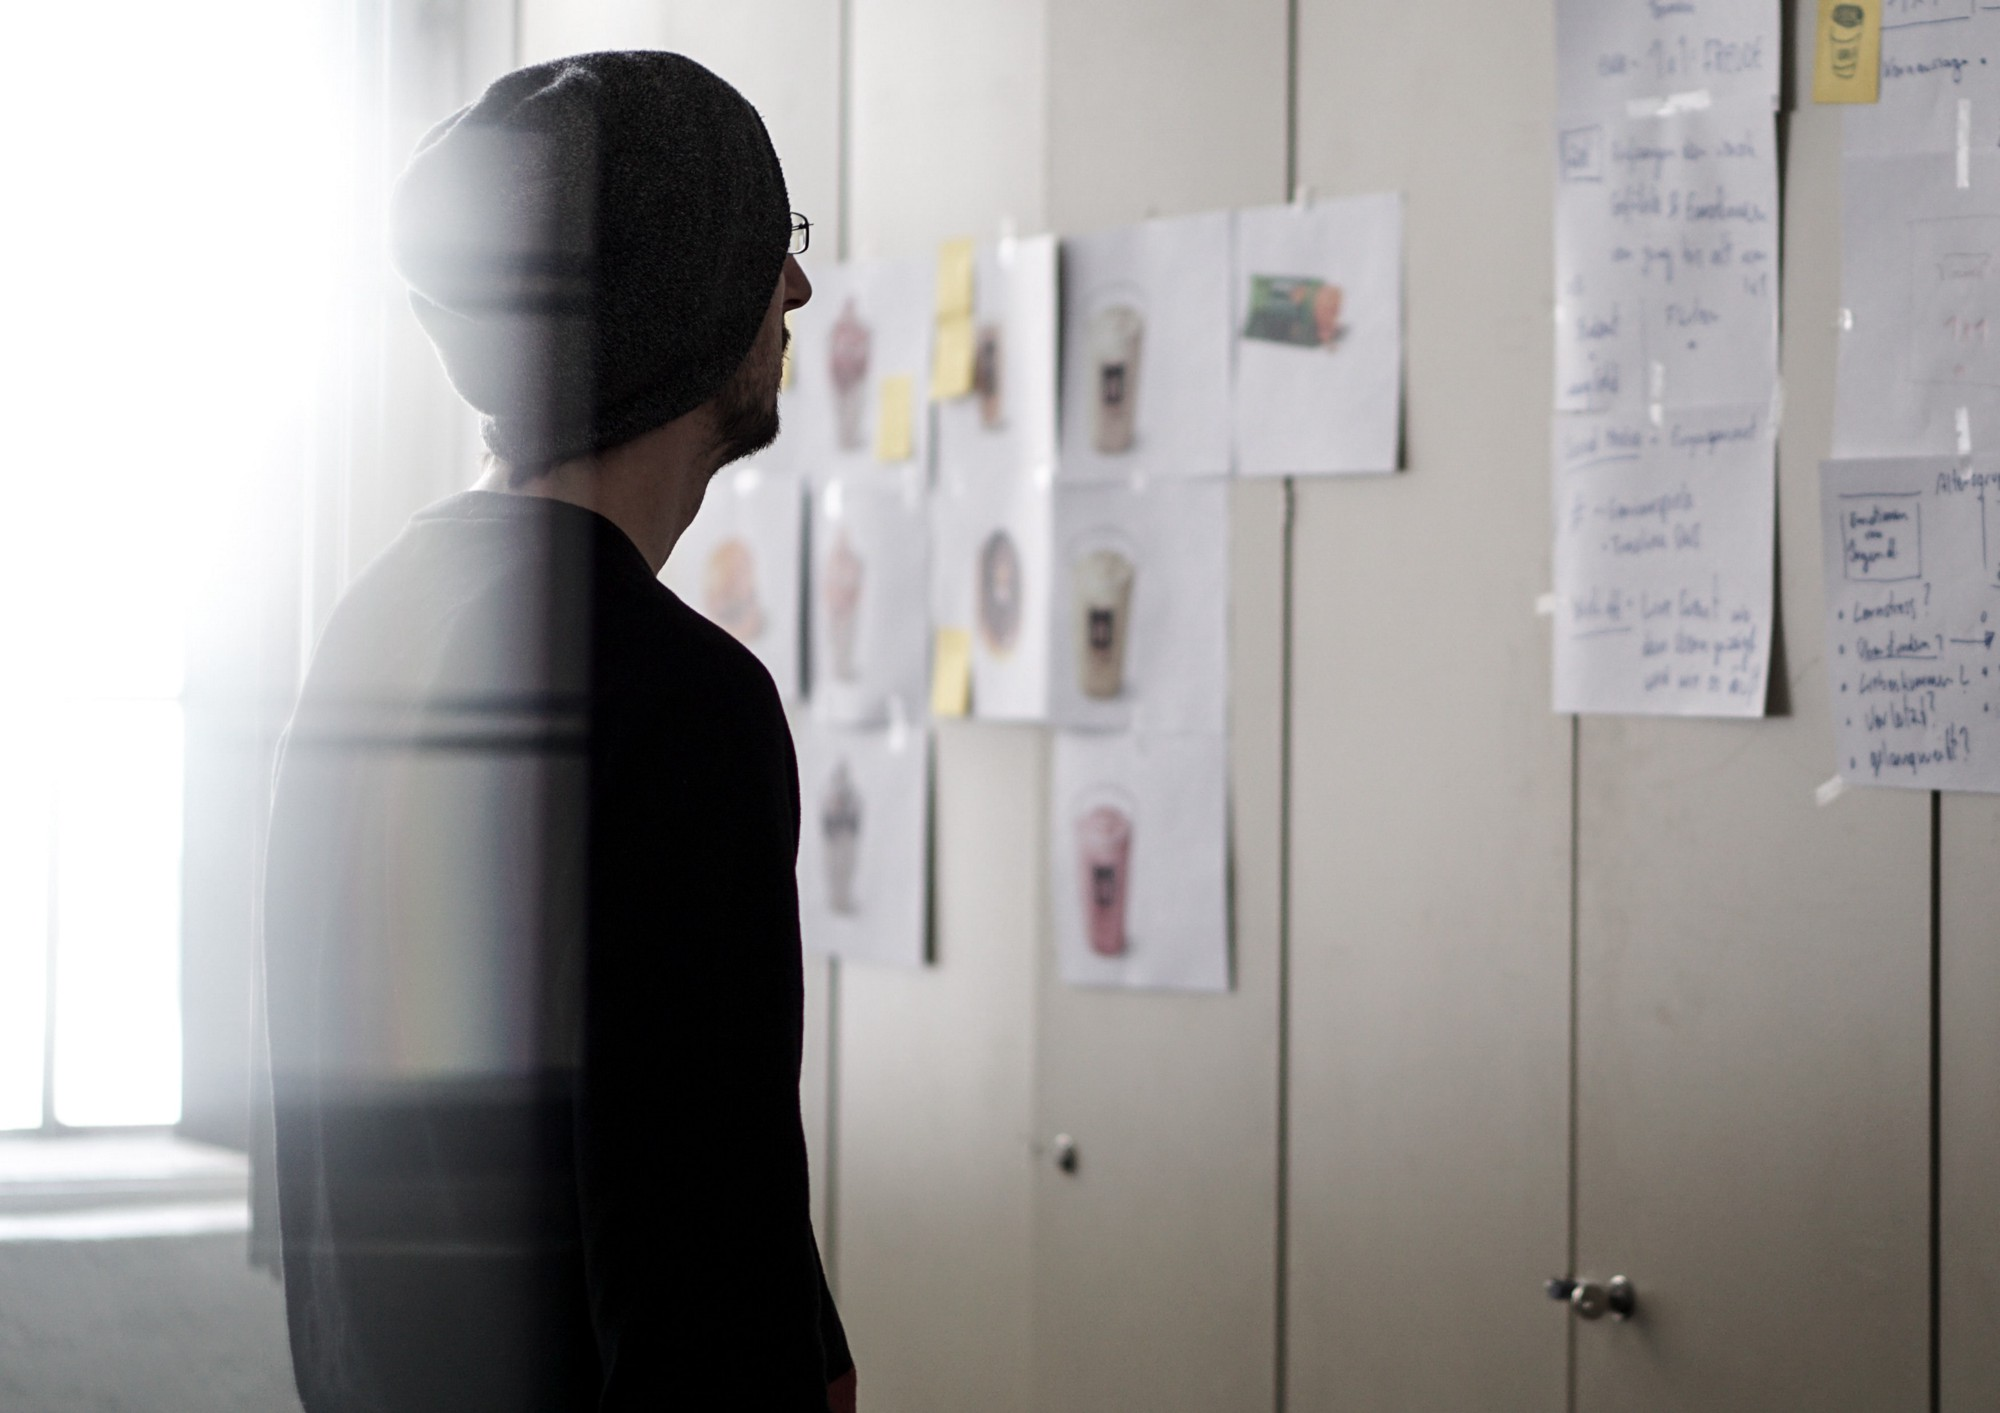 a man looking at the wall full of notes and post-its. Image taken from Unsplash